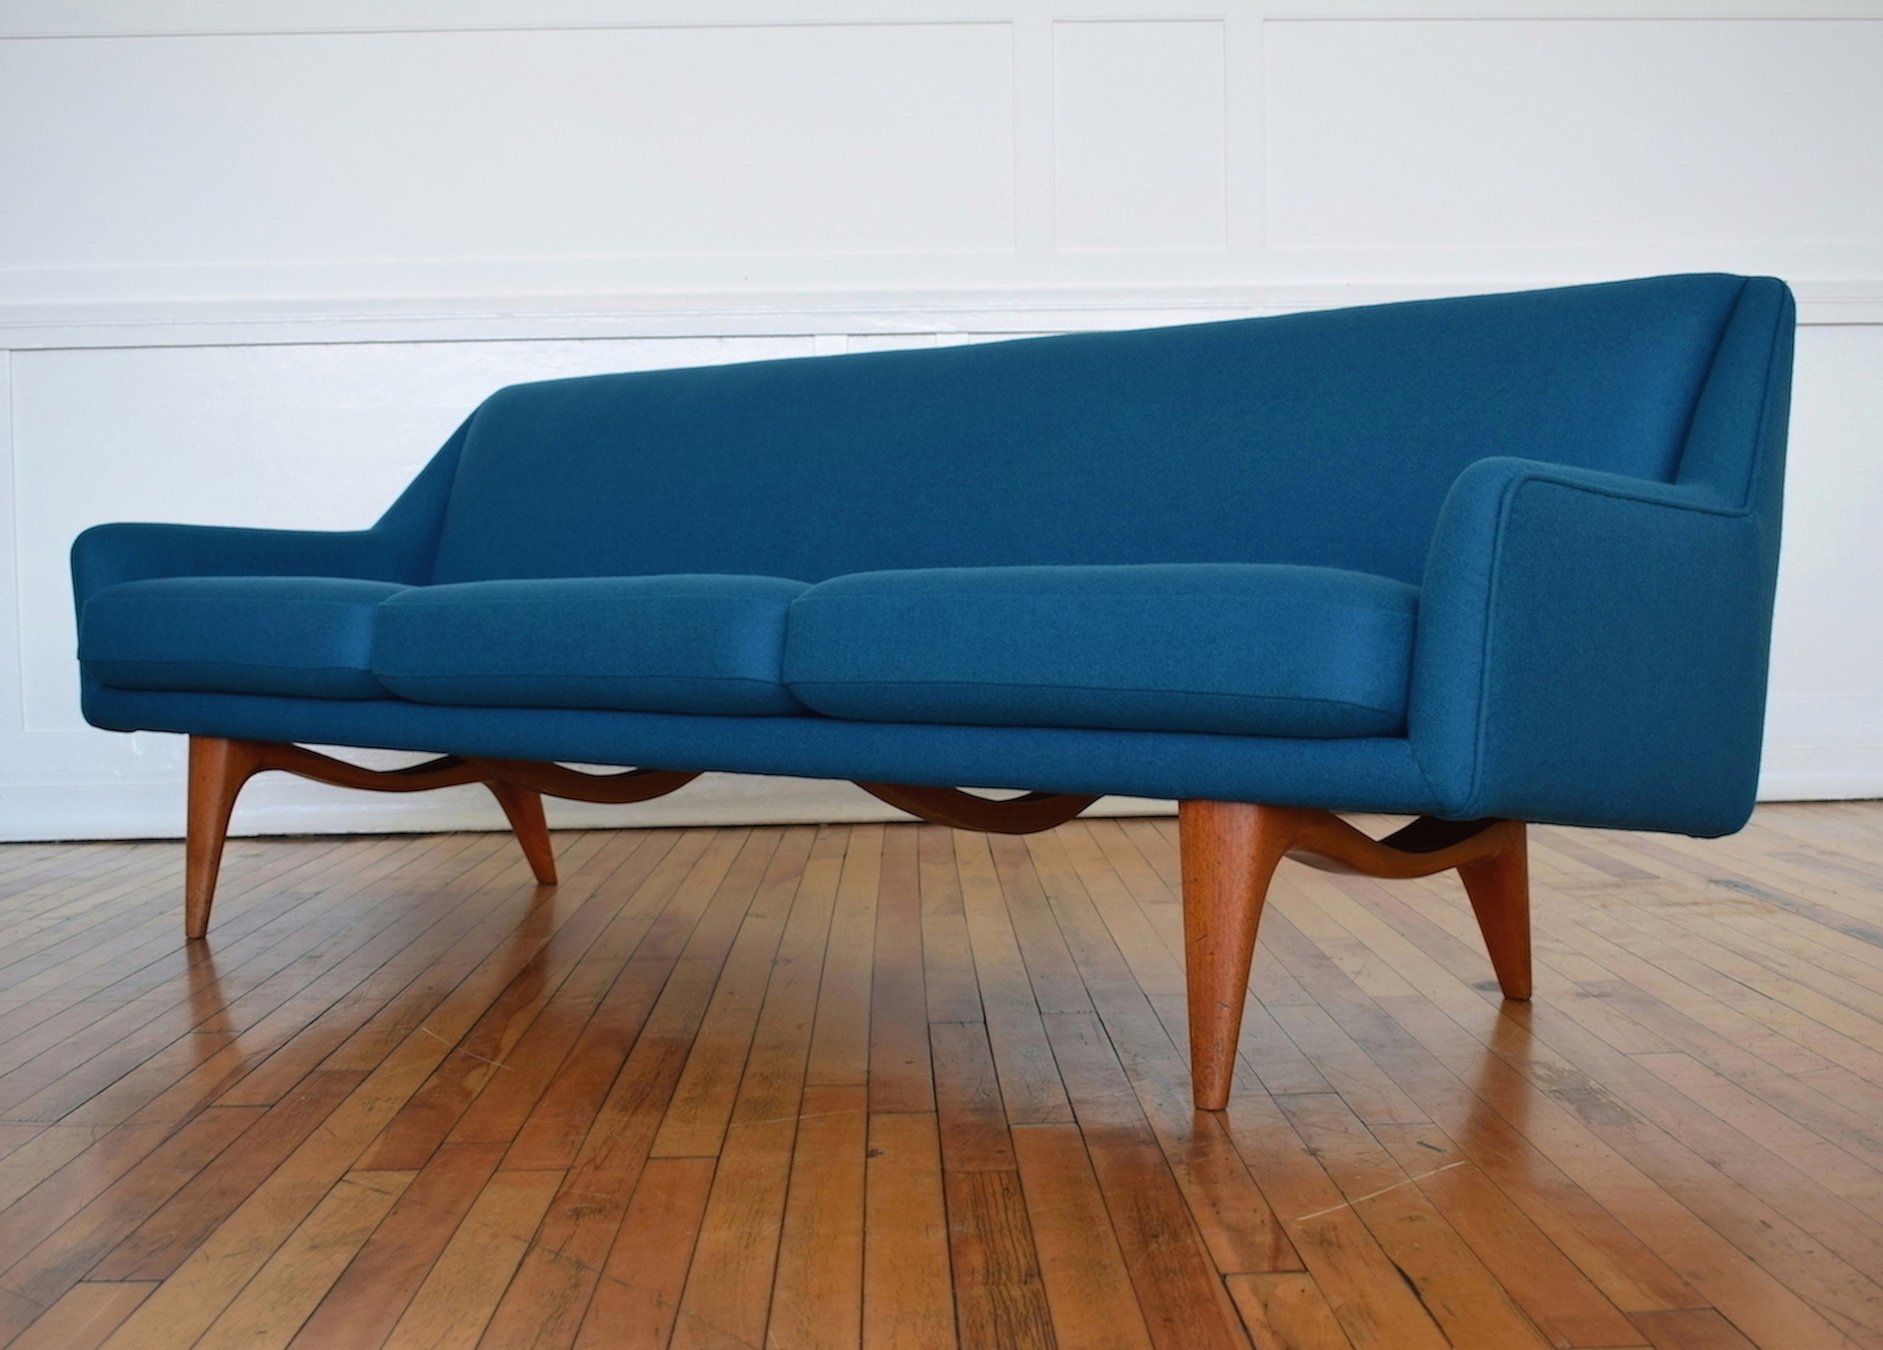 Gentil Danish ML Sofa By Illum Wikkelso For Mikael Laursen In Kvadrat Wool, 1950s